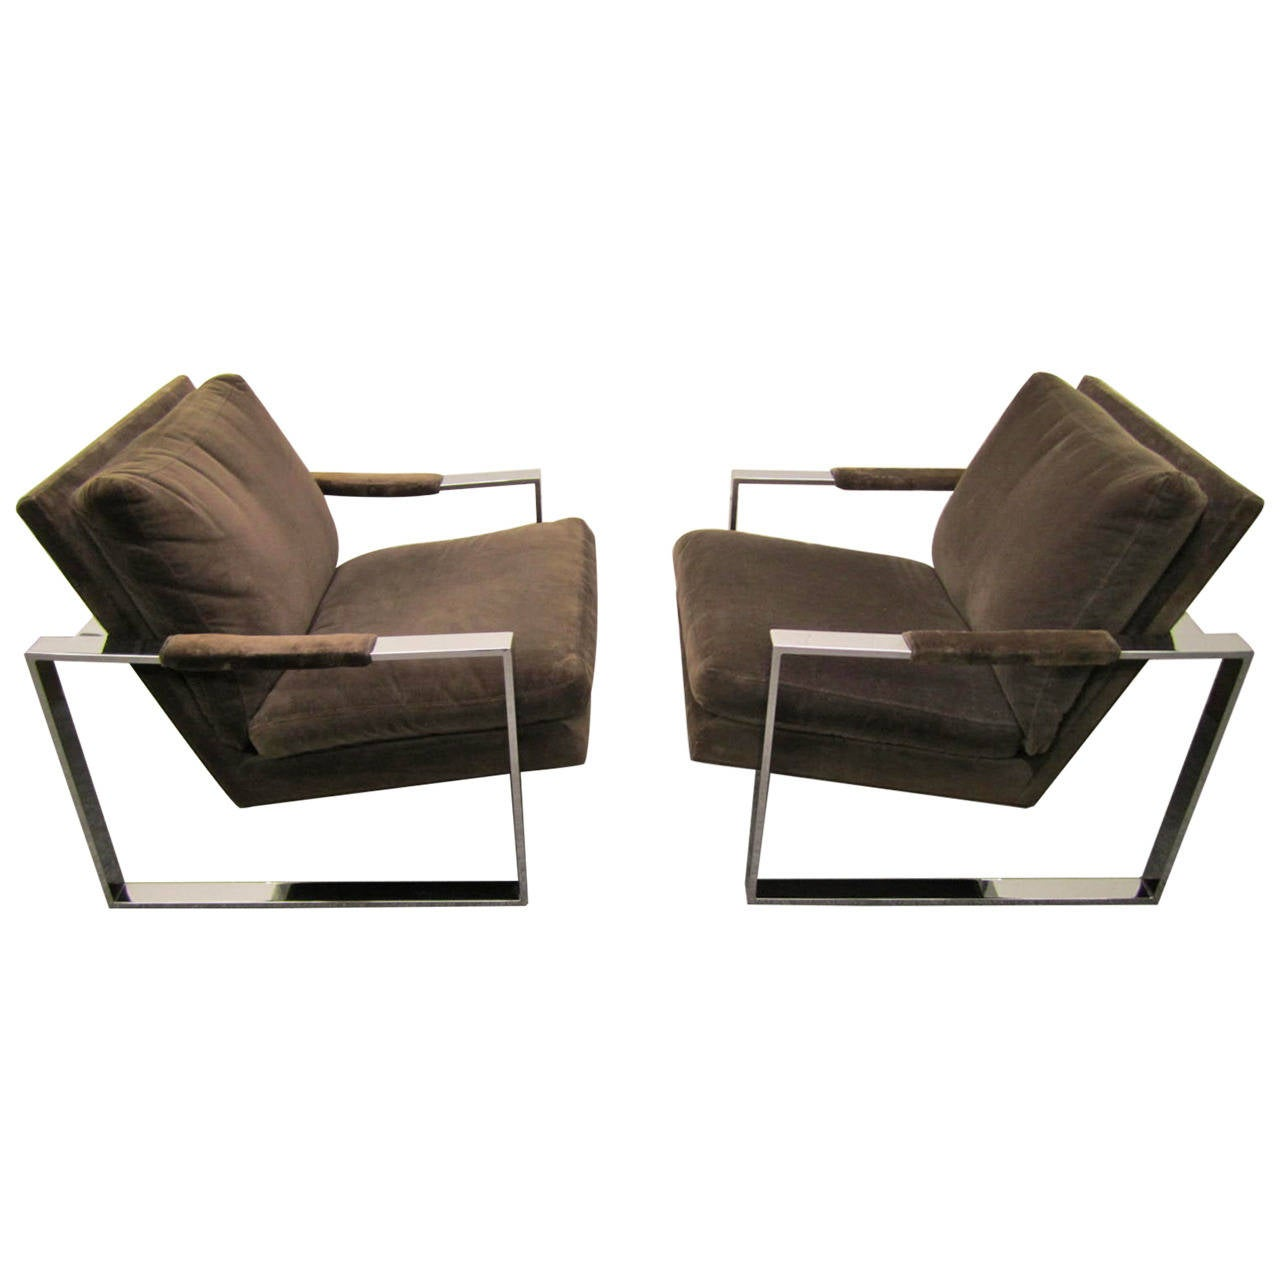 Cube Chairs Fabulous Pair Of Milo Baughman Chrome Cube Lounge Chairs Mid Century Modern